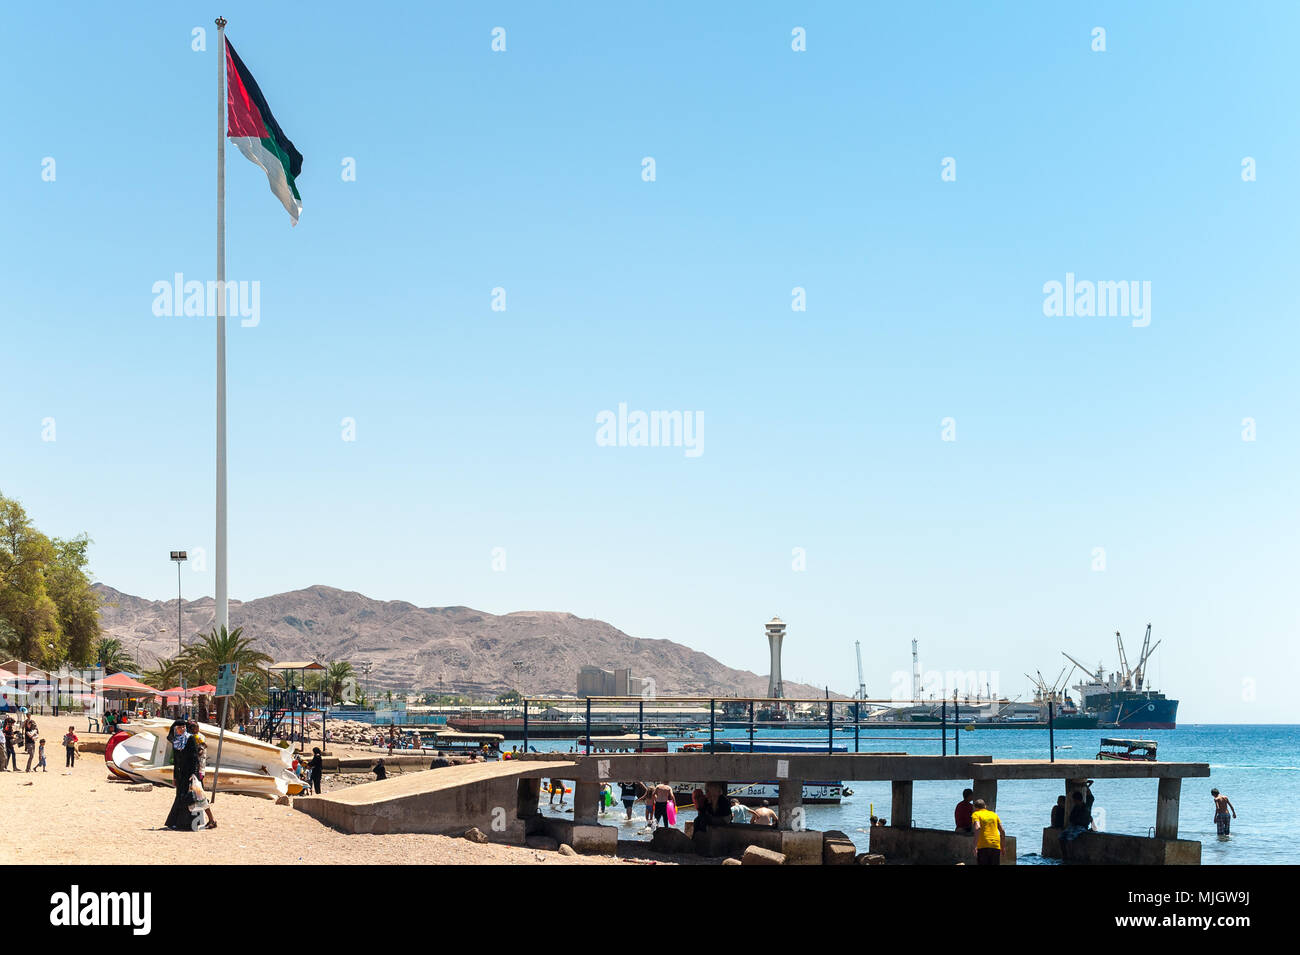 Aqaba,al-ʻAqabah, 'the Obstacle'is a Jordanian coastal city situated at the northeastern tip of the Red Sea. Aqaba is the largest city on the Gulf of - Stock Image